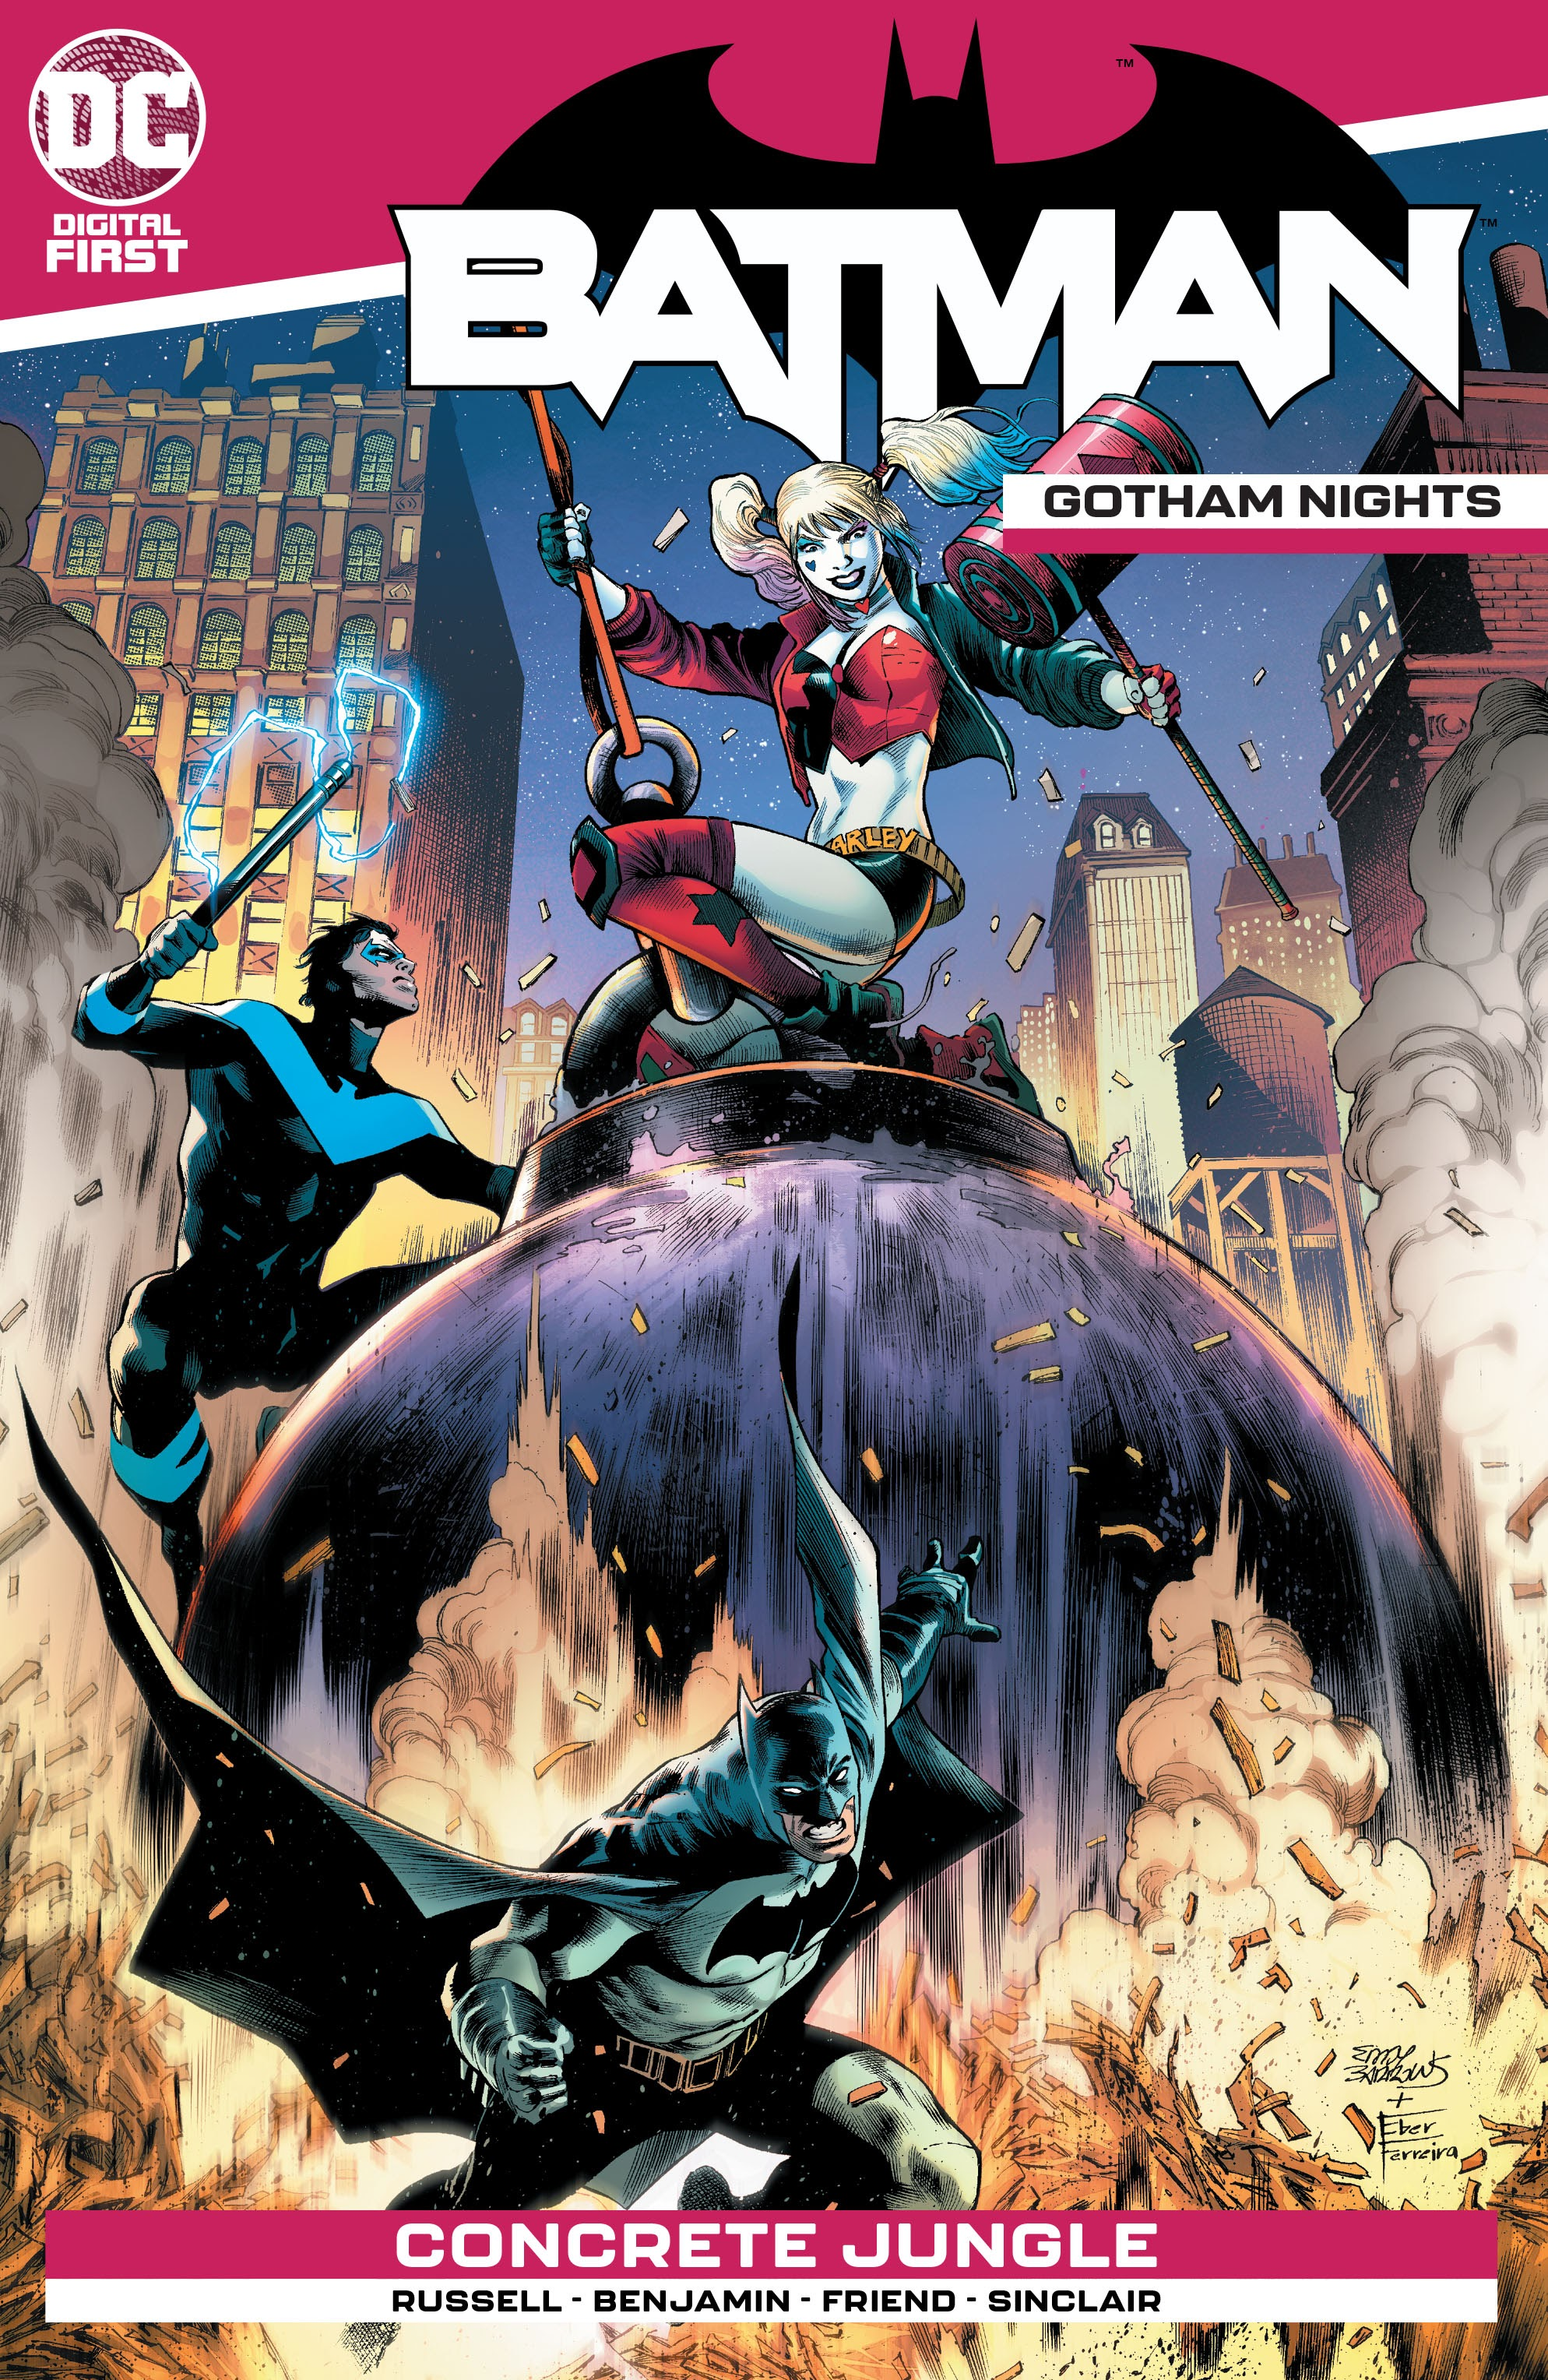 Batman: Gotham Nights Vol 1 5 (Digital)